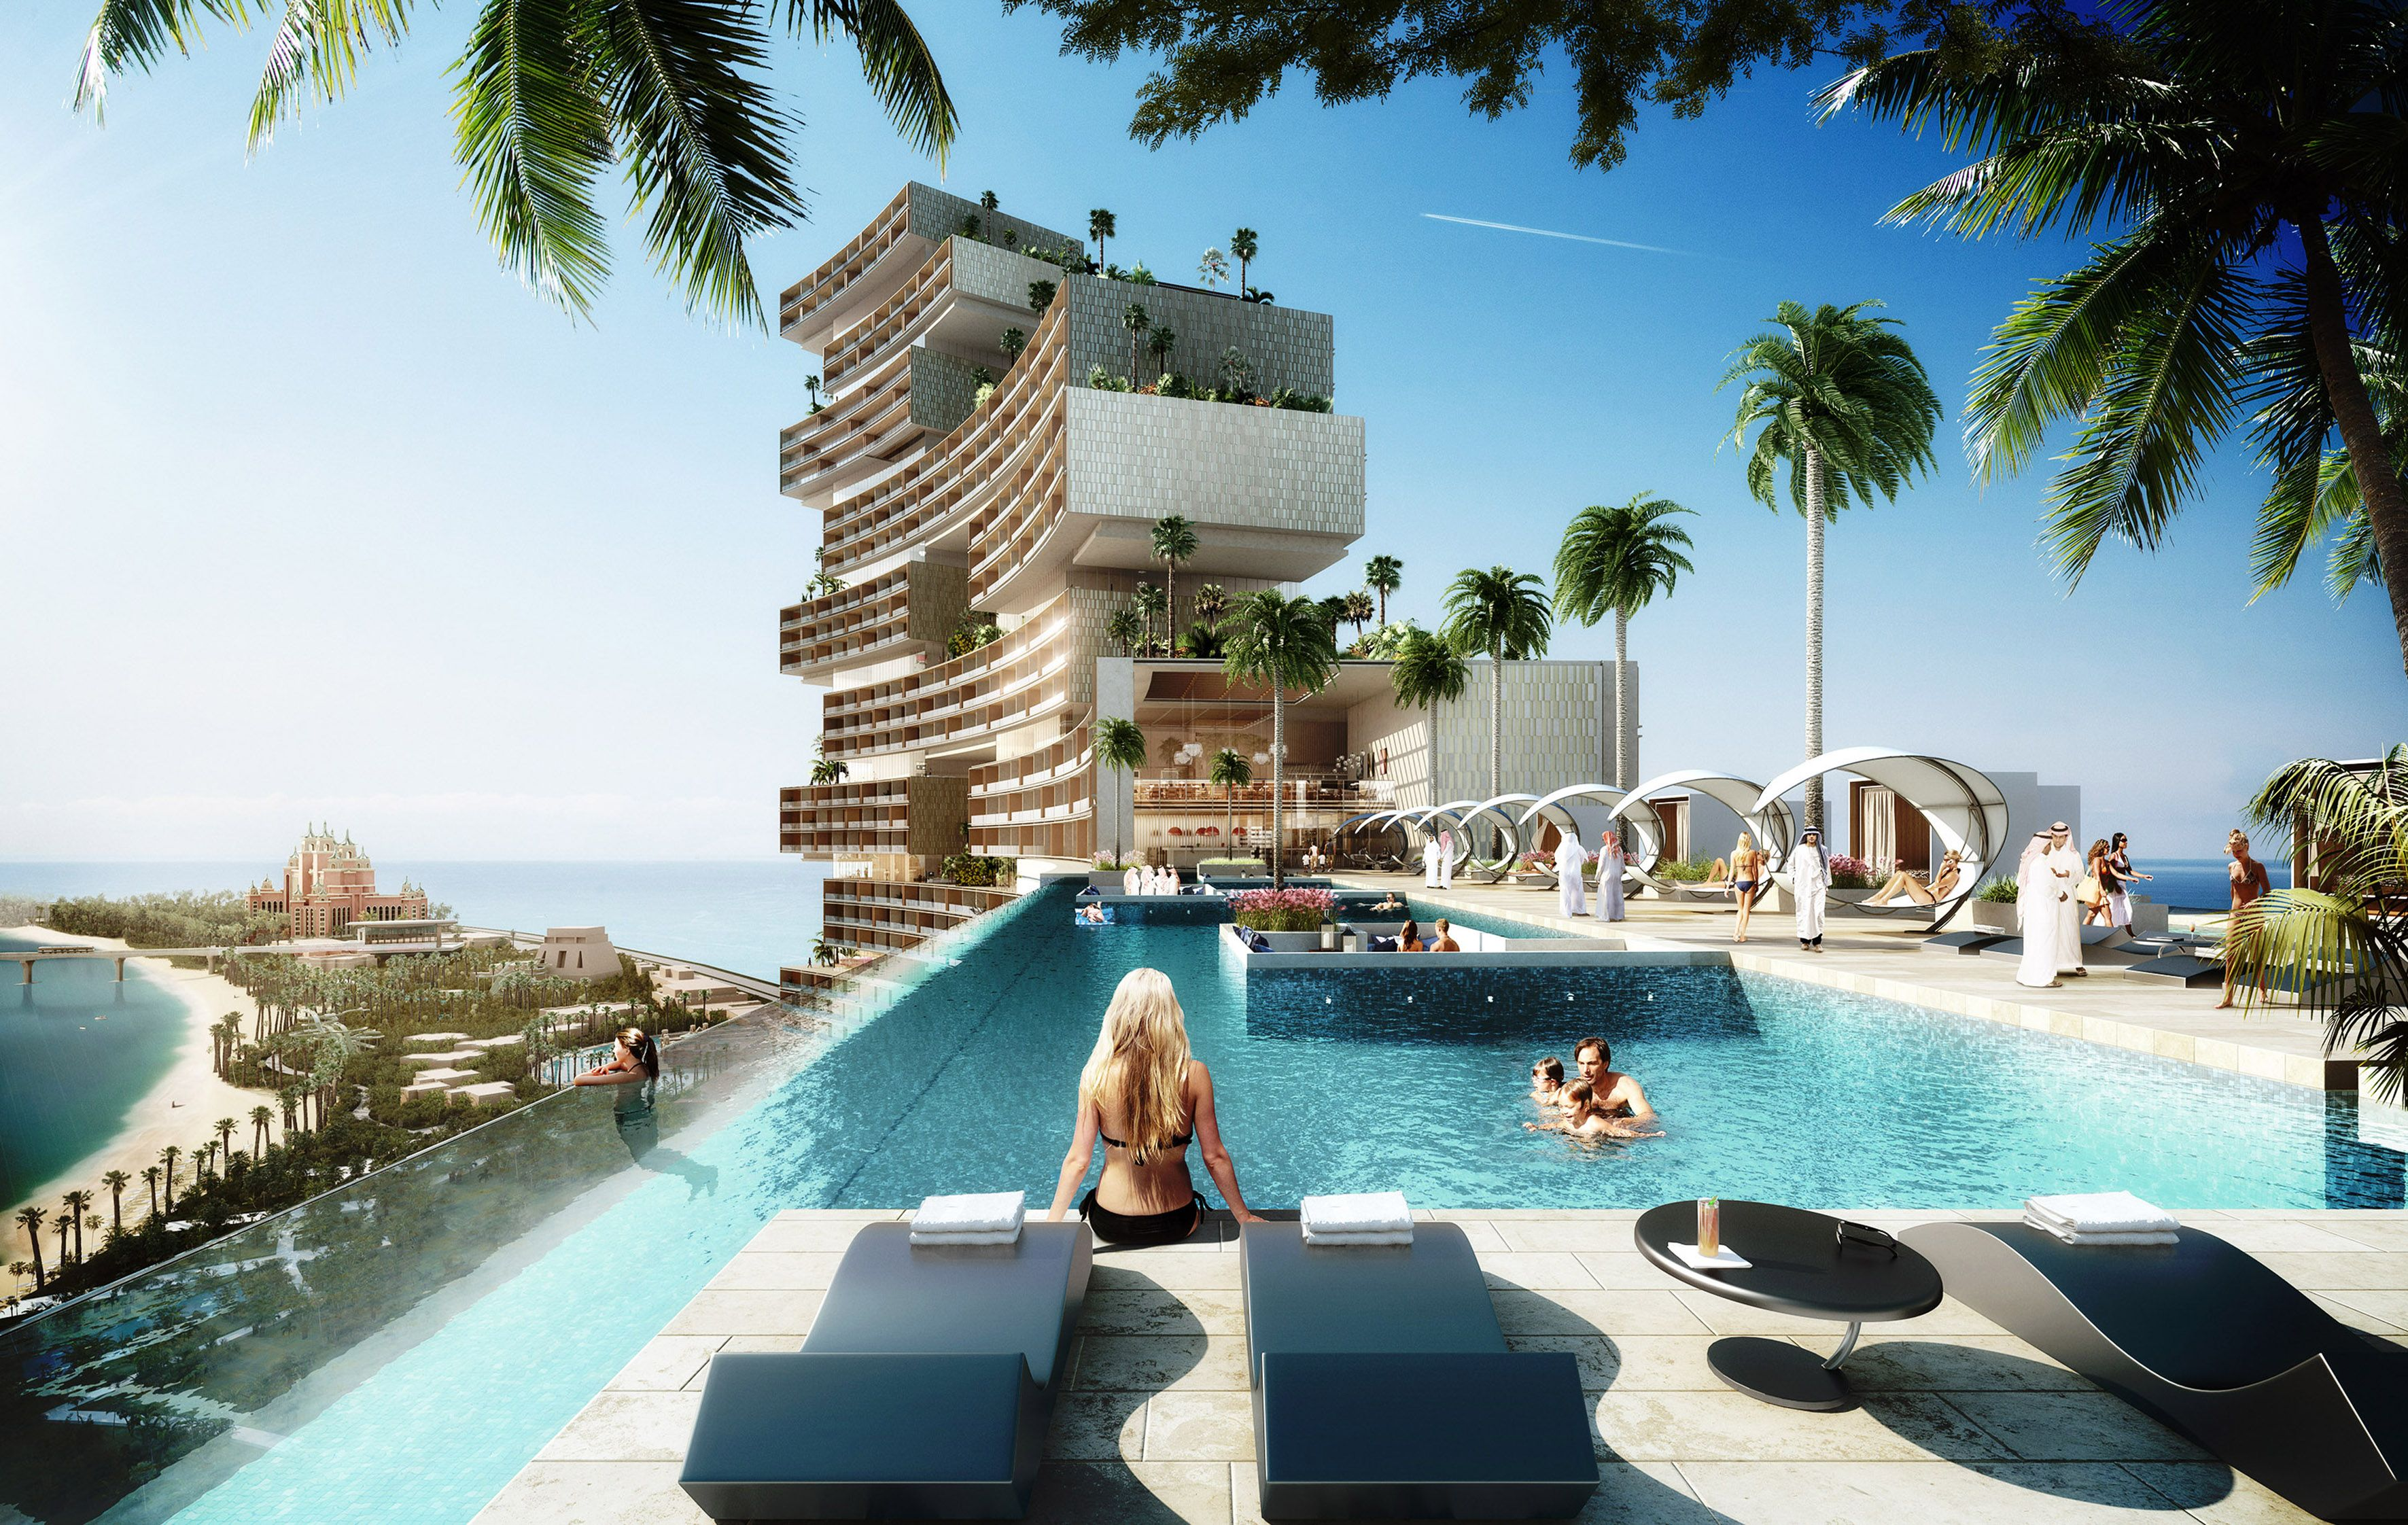 Innovation Meets Nature At The Royal Atlantis Residence To Create The Most Prestigious Ocean